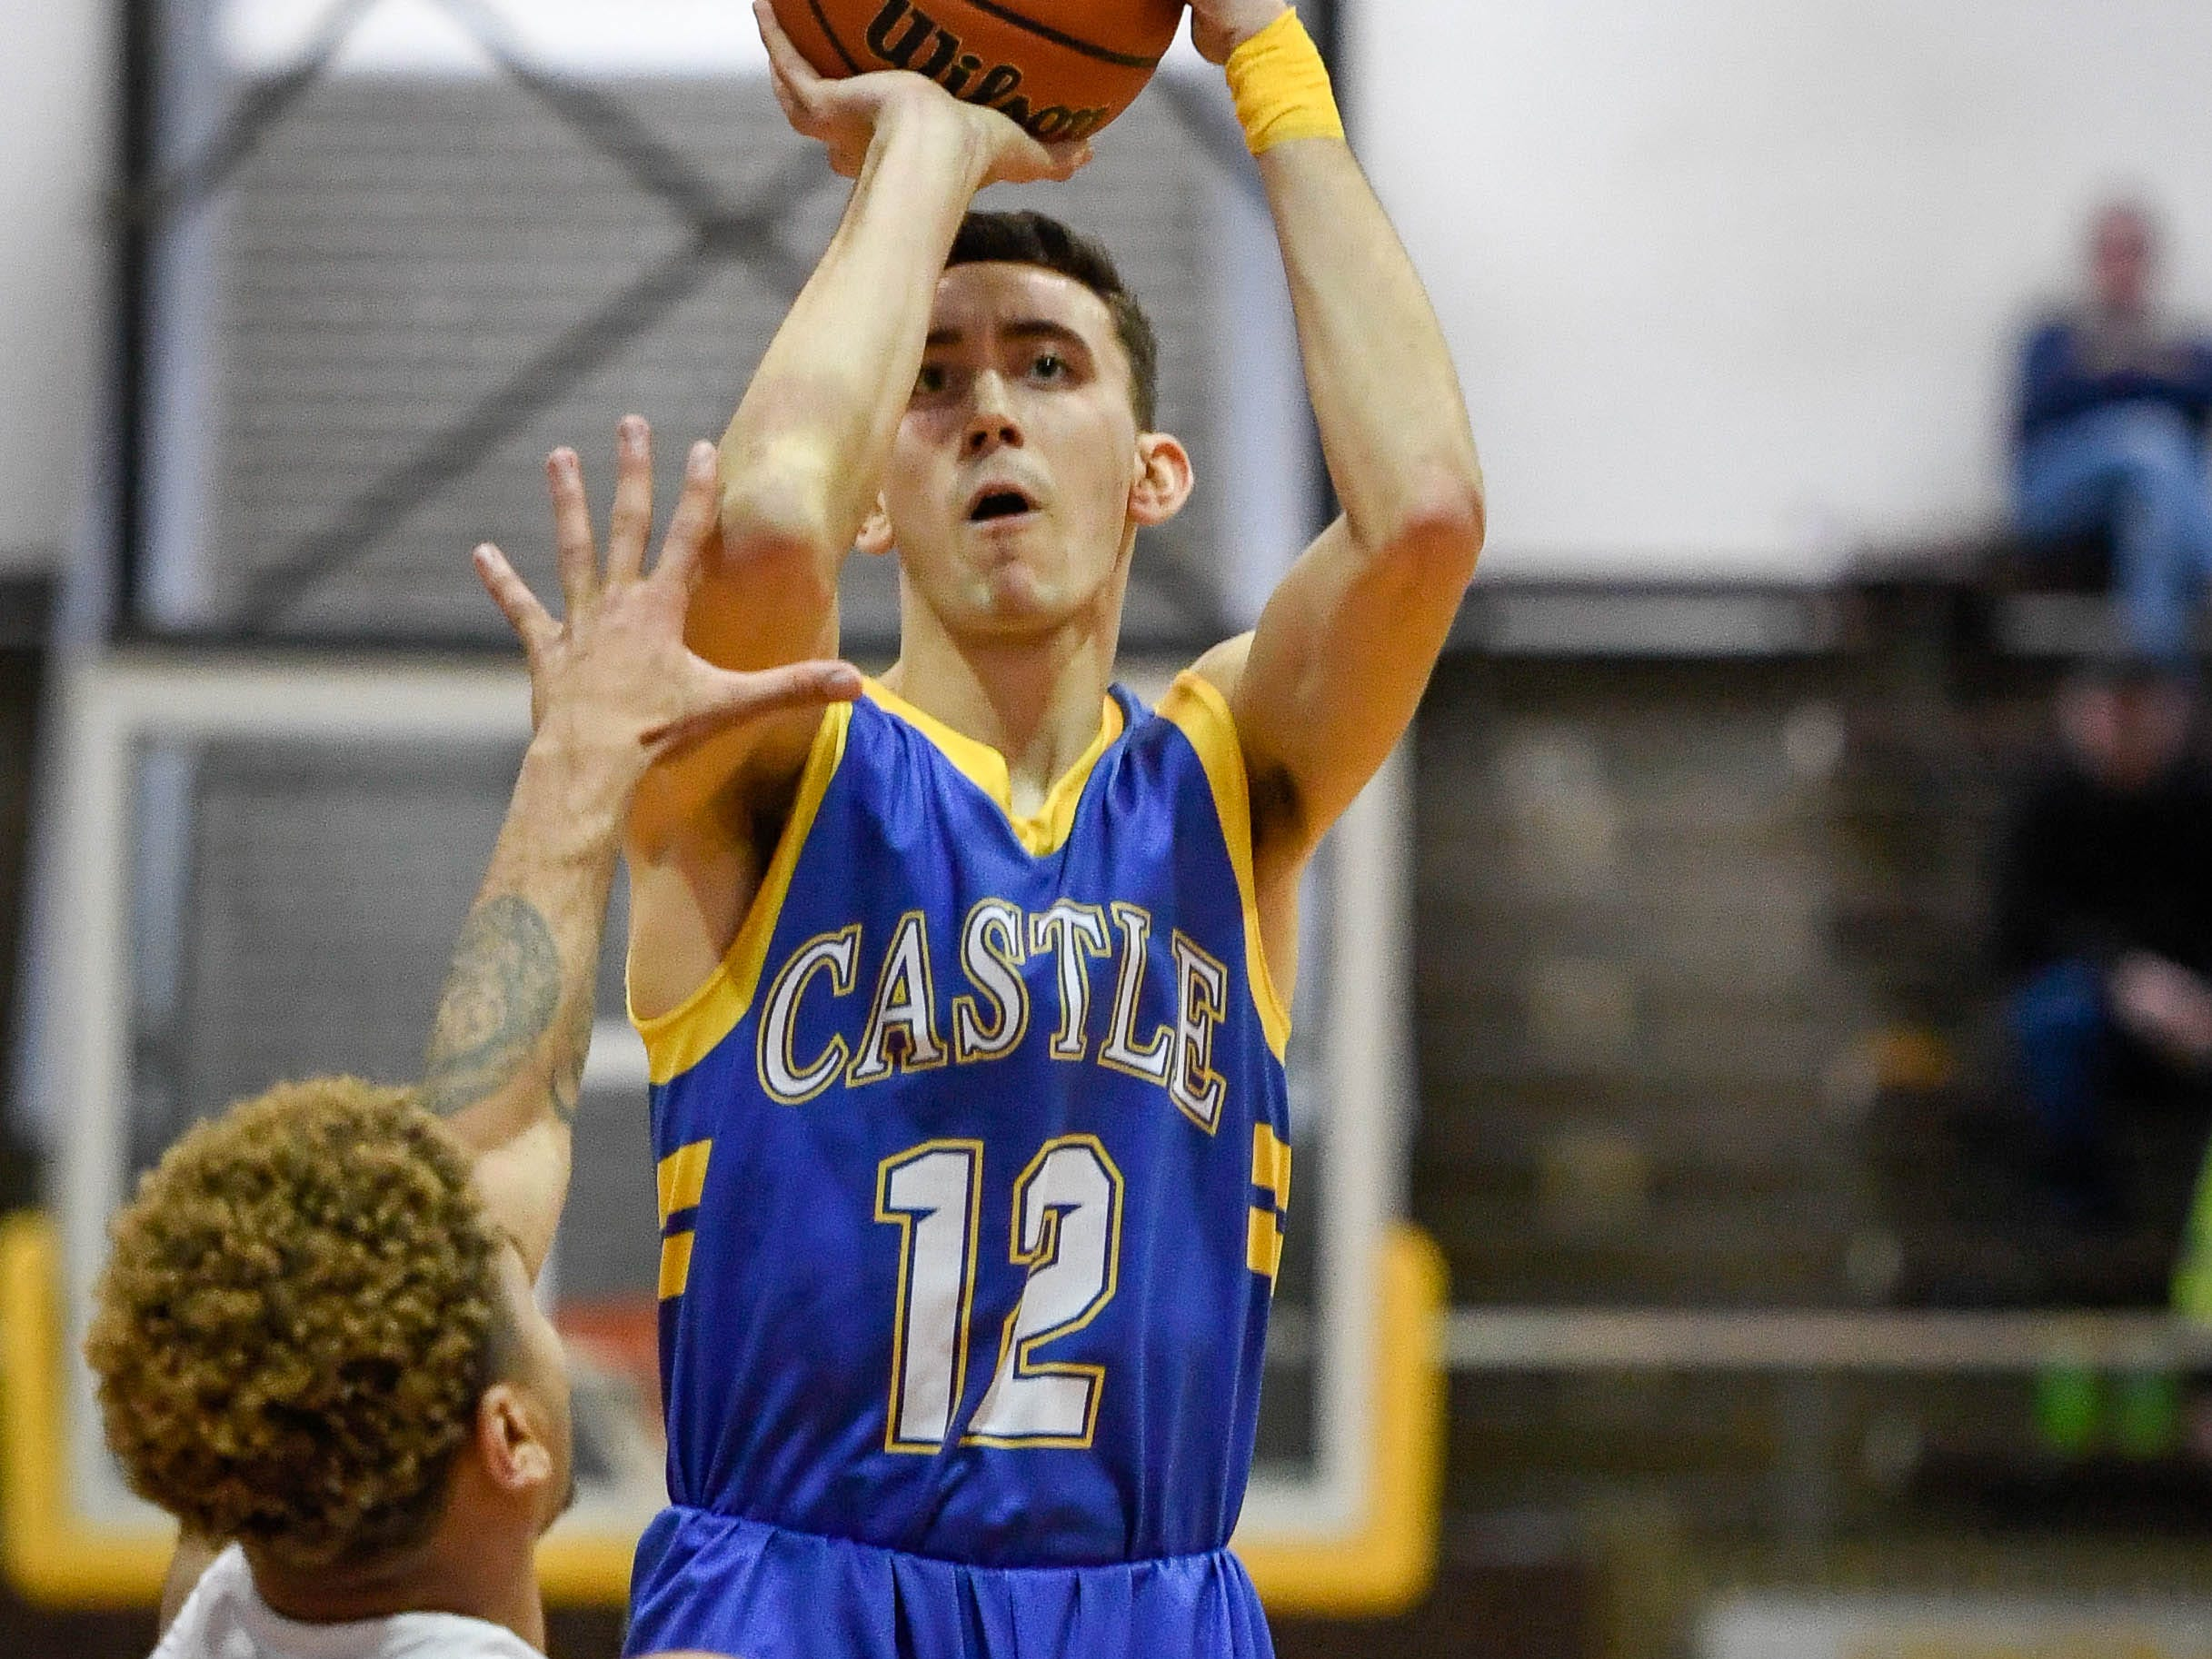 Castle's Hemenway second-team AP all-state; other area players receive high honorable mention